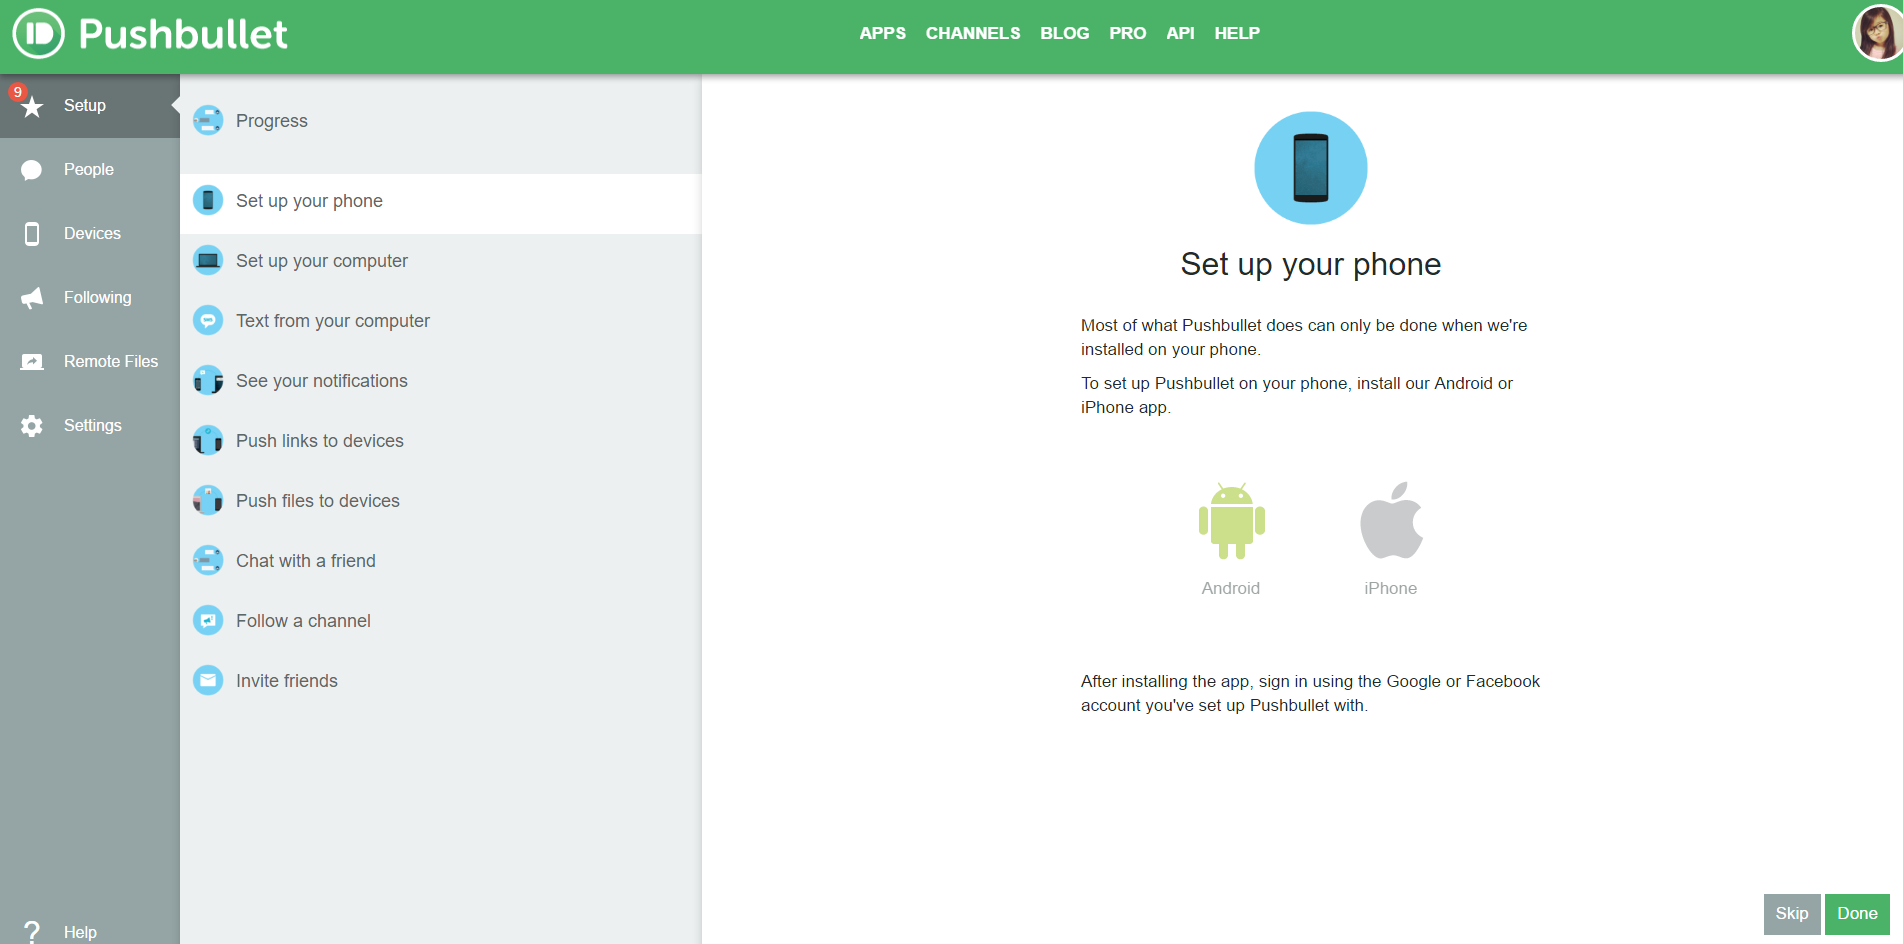 set up your phone Pushbullet